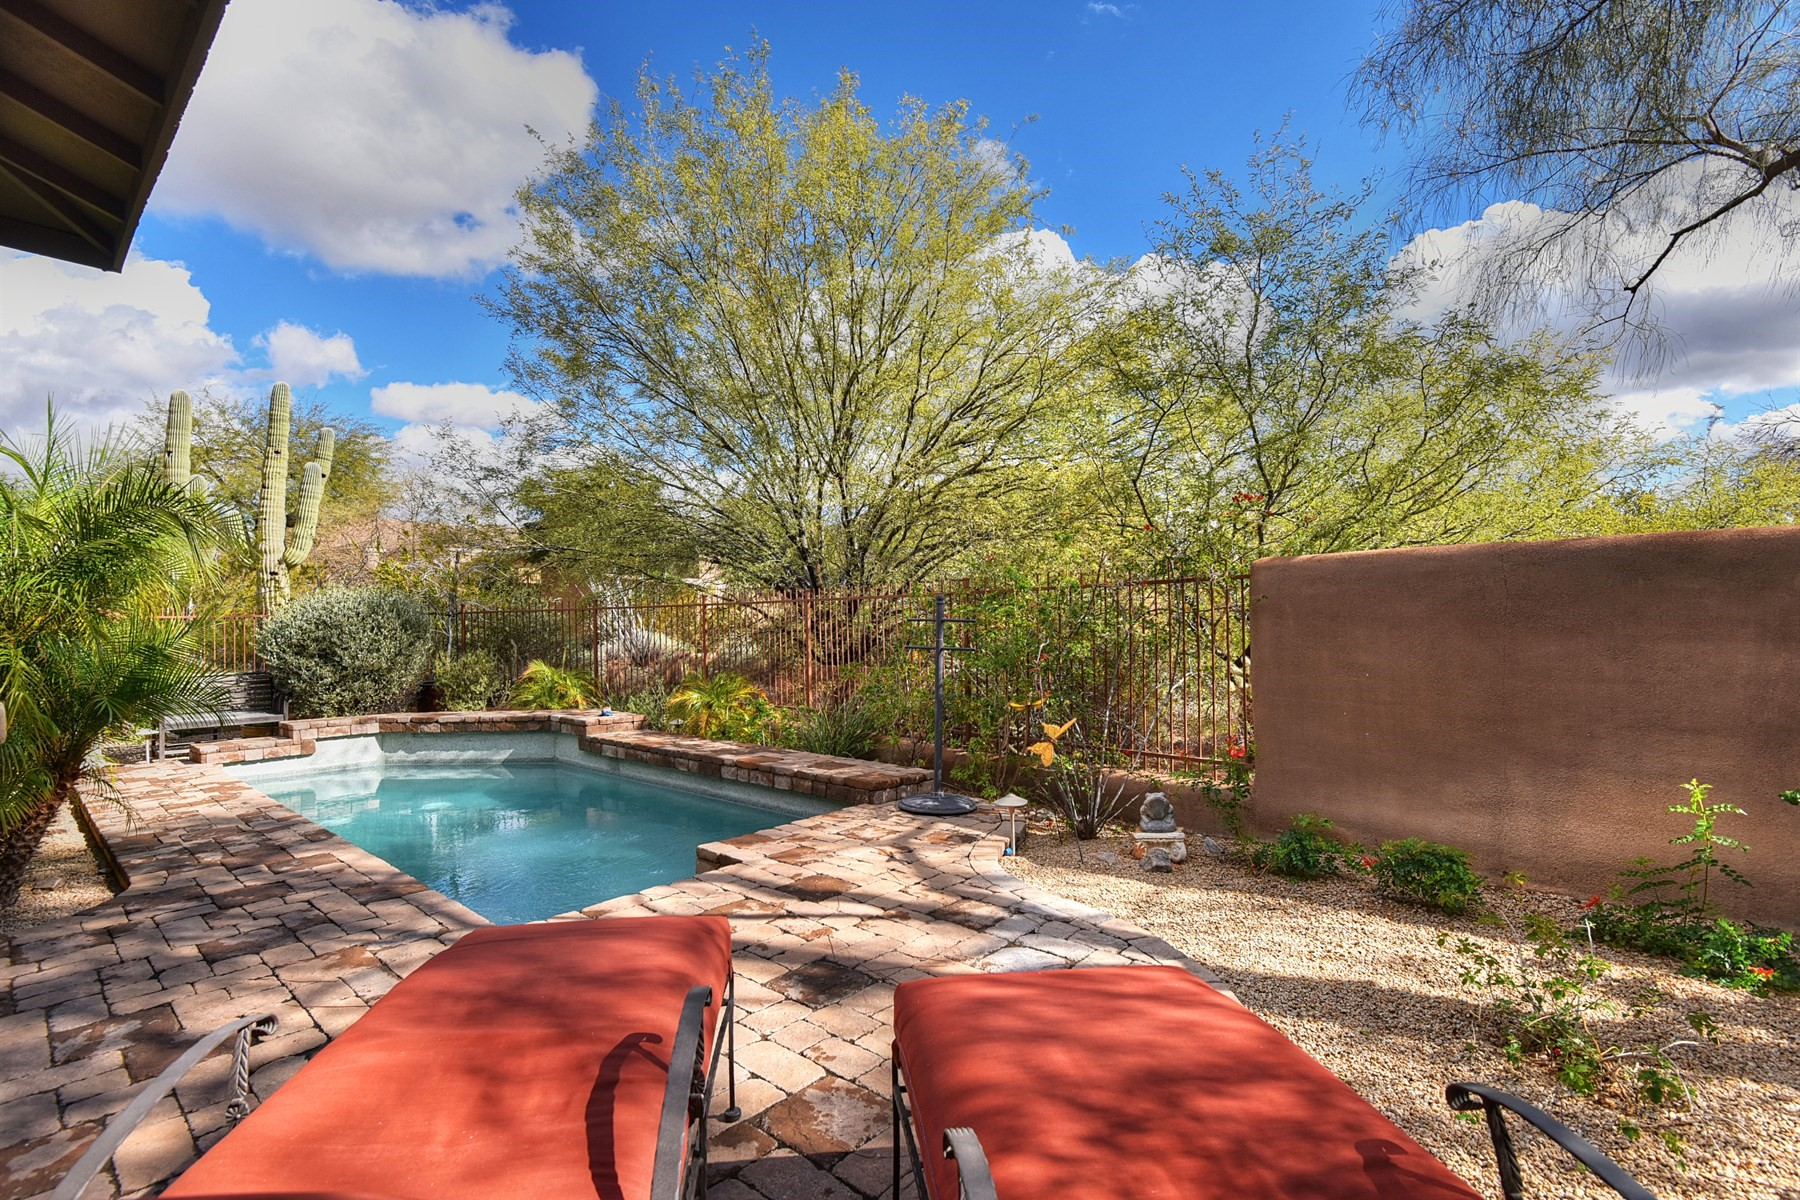 Single Family Home for Sale at Beautiful home in the private gated community of DC Ranch 20469 N 94th Pl Scottsdale, Arizona, 85255 United States